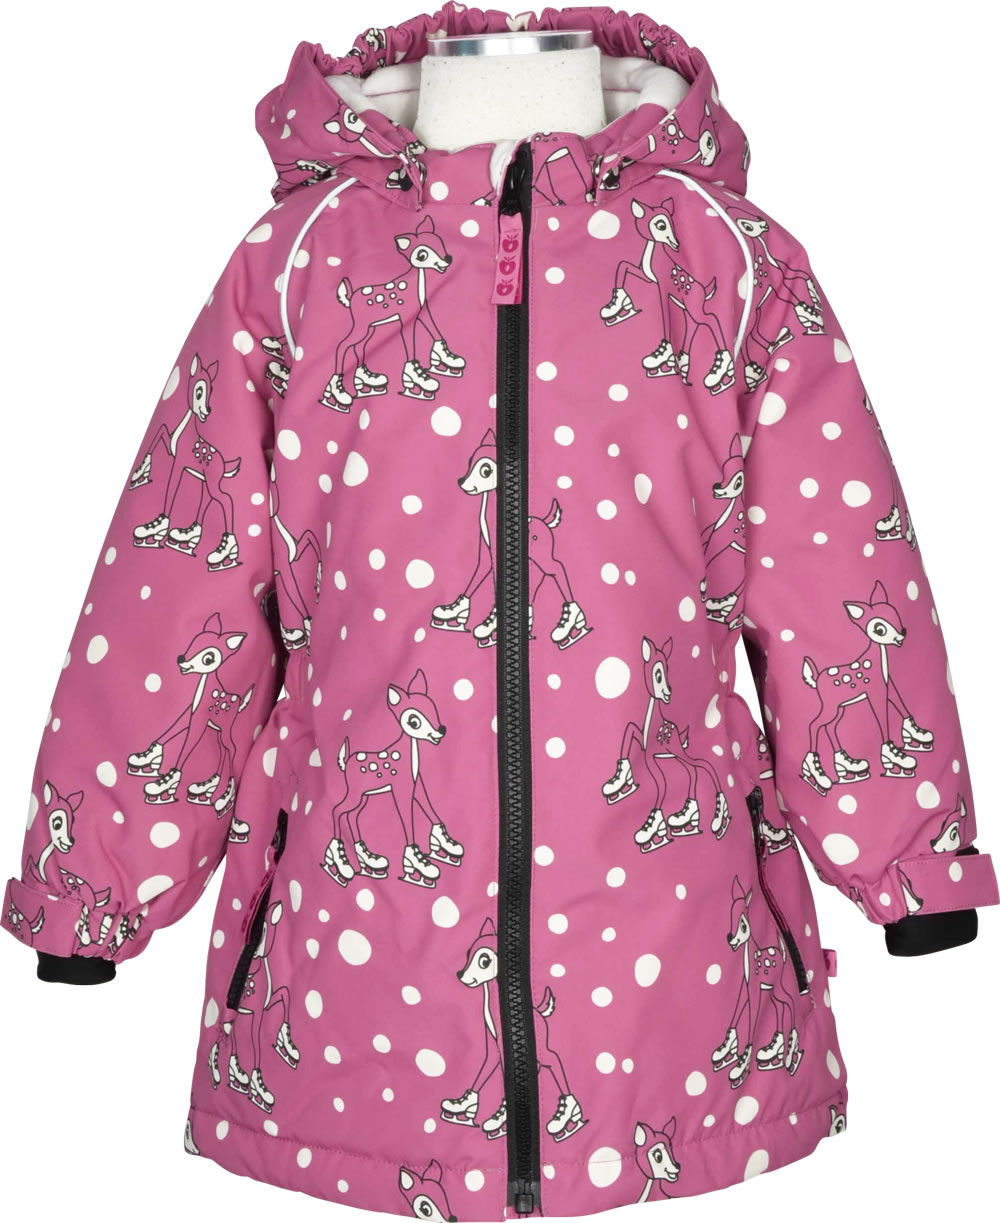 sneakers for cheap 9f1c2 58315 Smafolk Mädchen Winter-Jacke HIRSCH rapture rose 83-9733-503